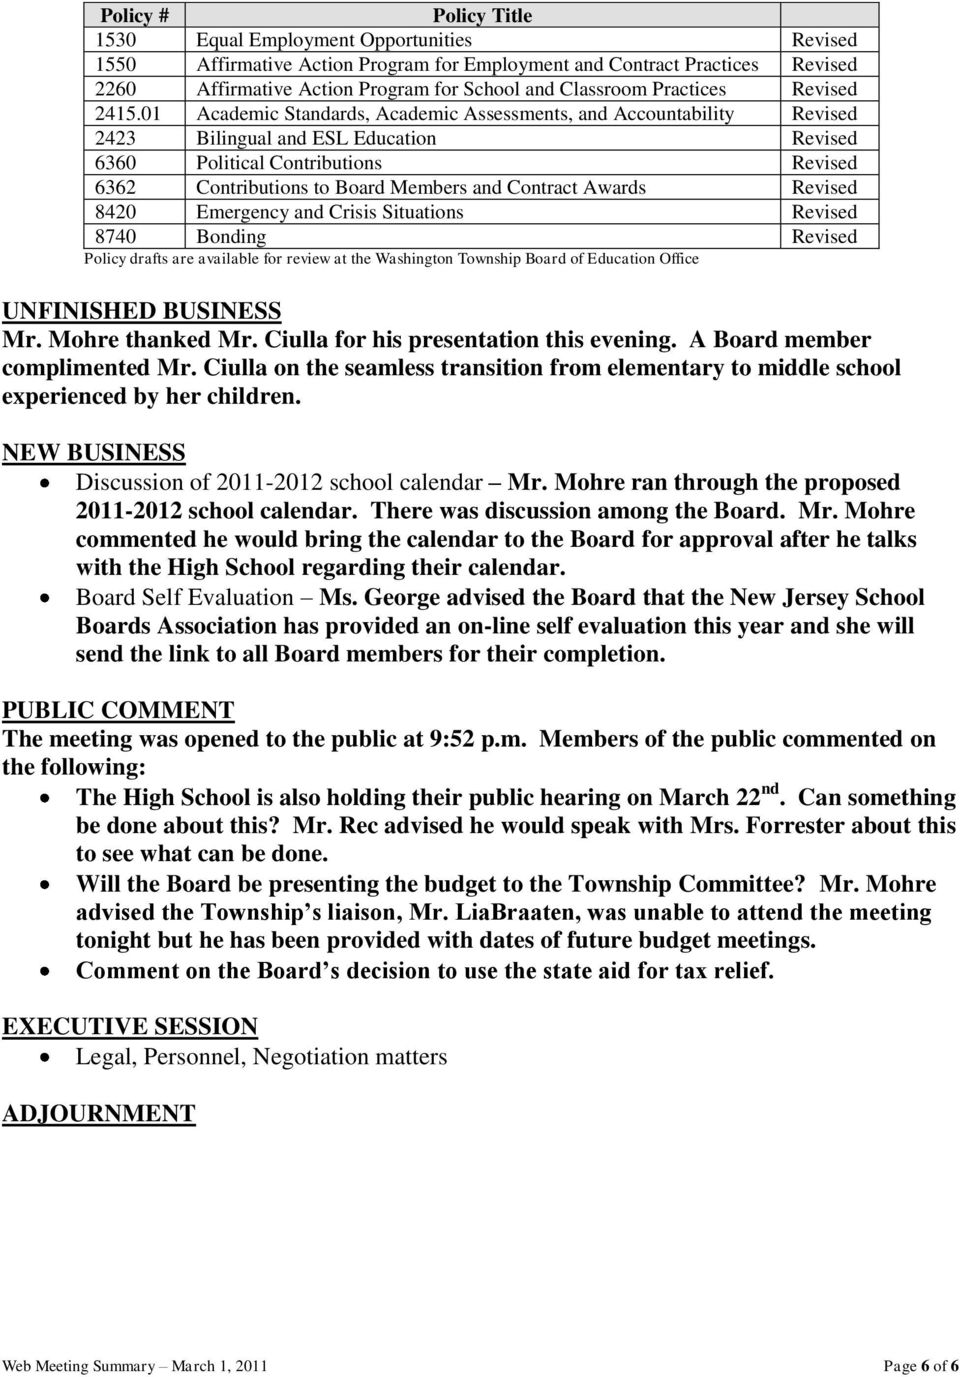 01 Academic Standards, Academic Assessments, and Accountability Revised 2423 Bilingual and ESL Education Revised 6360 Political Contributions Revised 6362 Contributions to Board Members and Contract